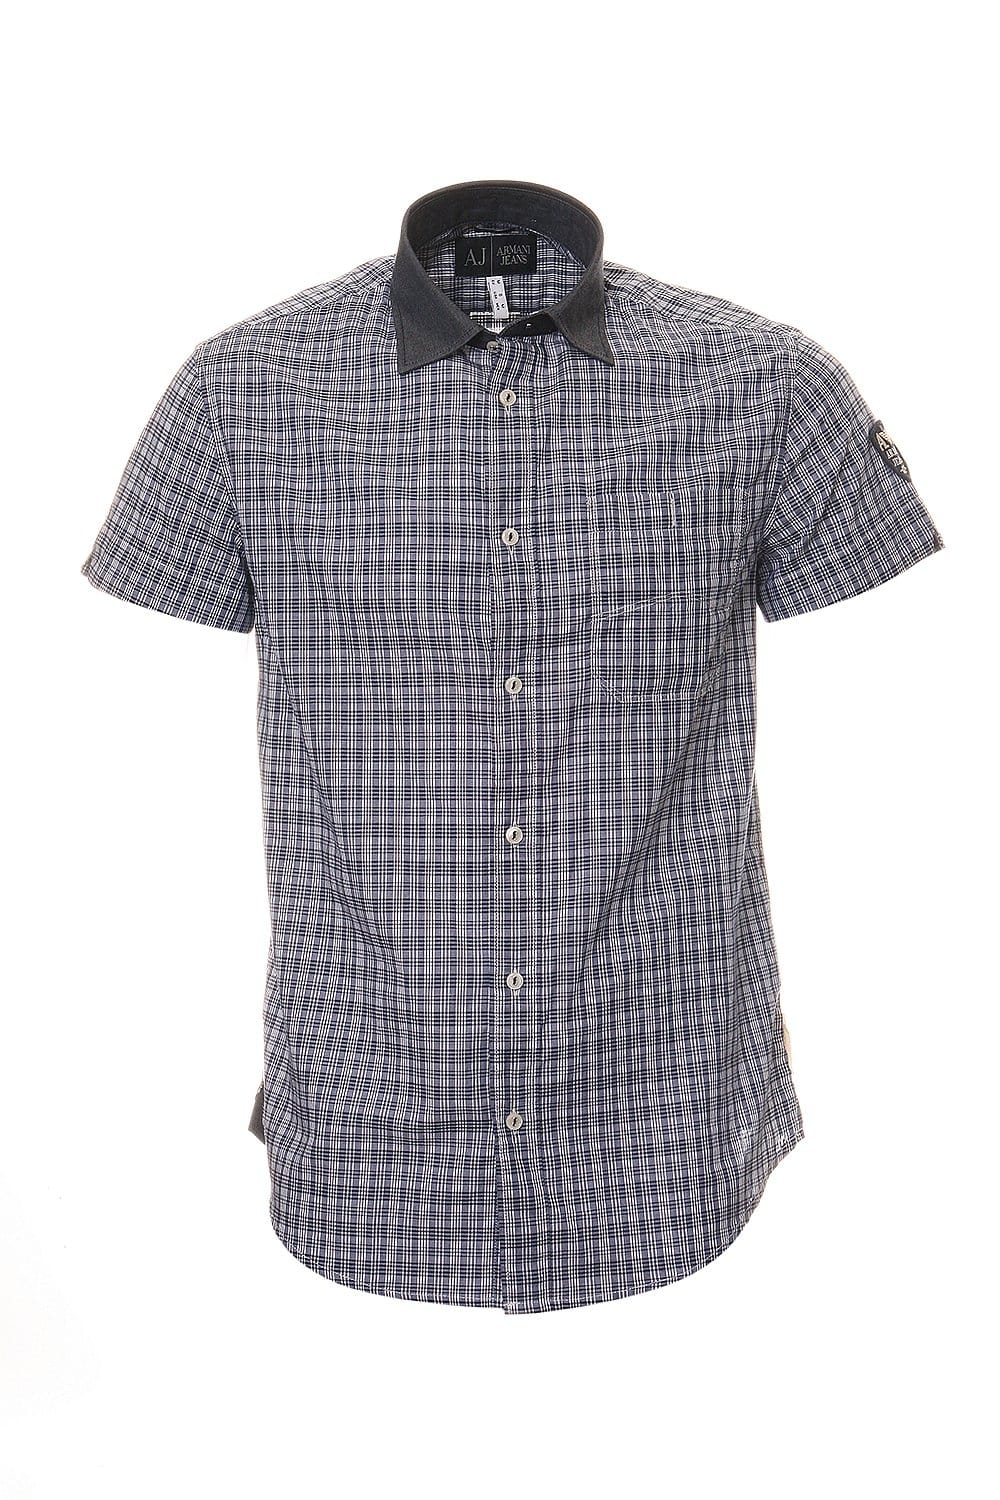 Armani jeans check shirt in navy blue t6c14np clothing for Navy blue checkered dress shirt